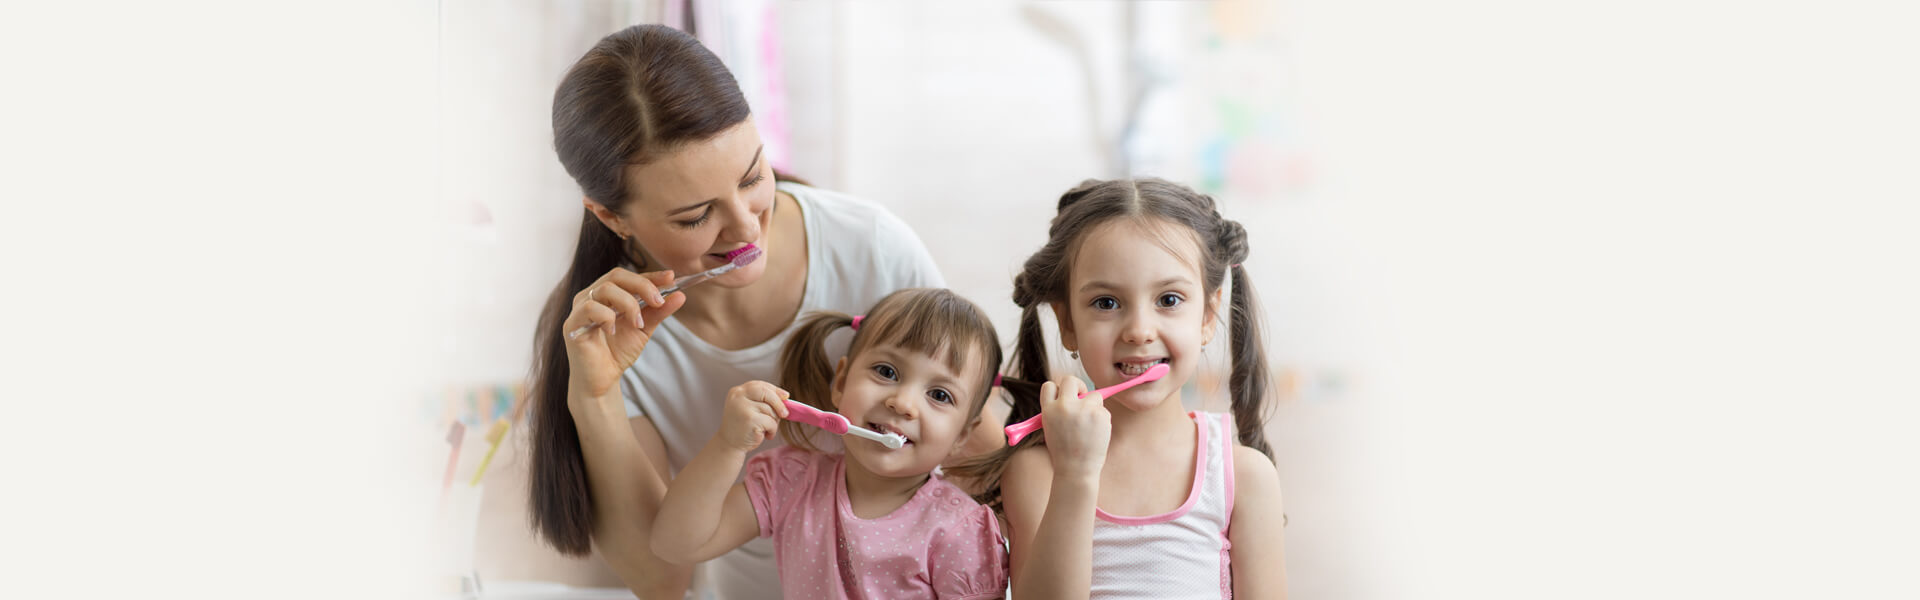 What Are the Benefits of Maintaining Proper Dental Hygiene?